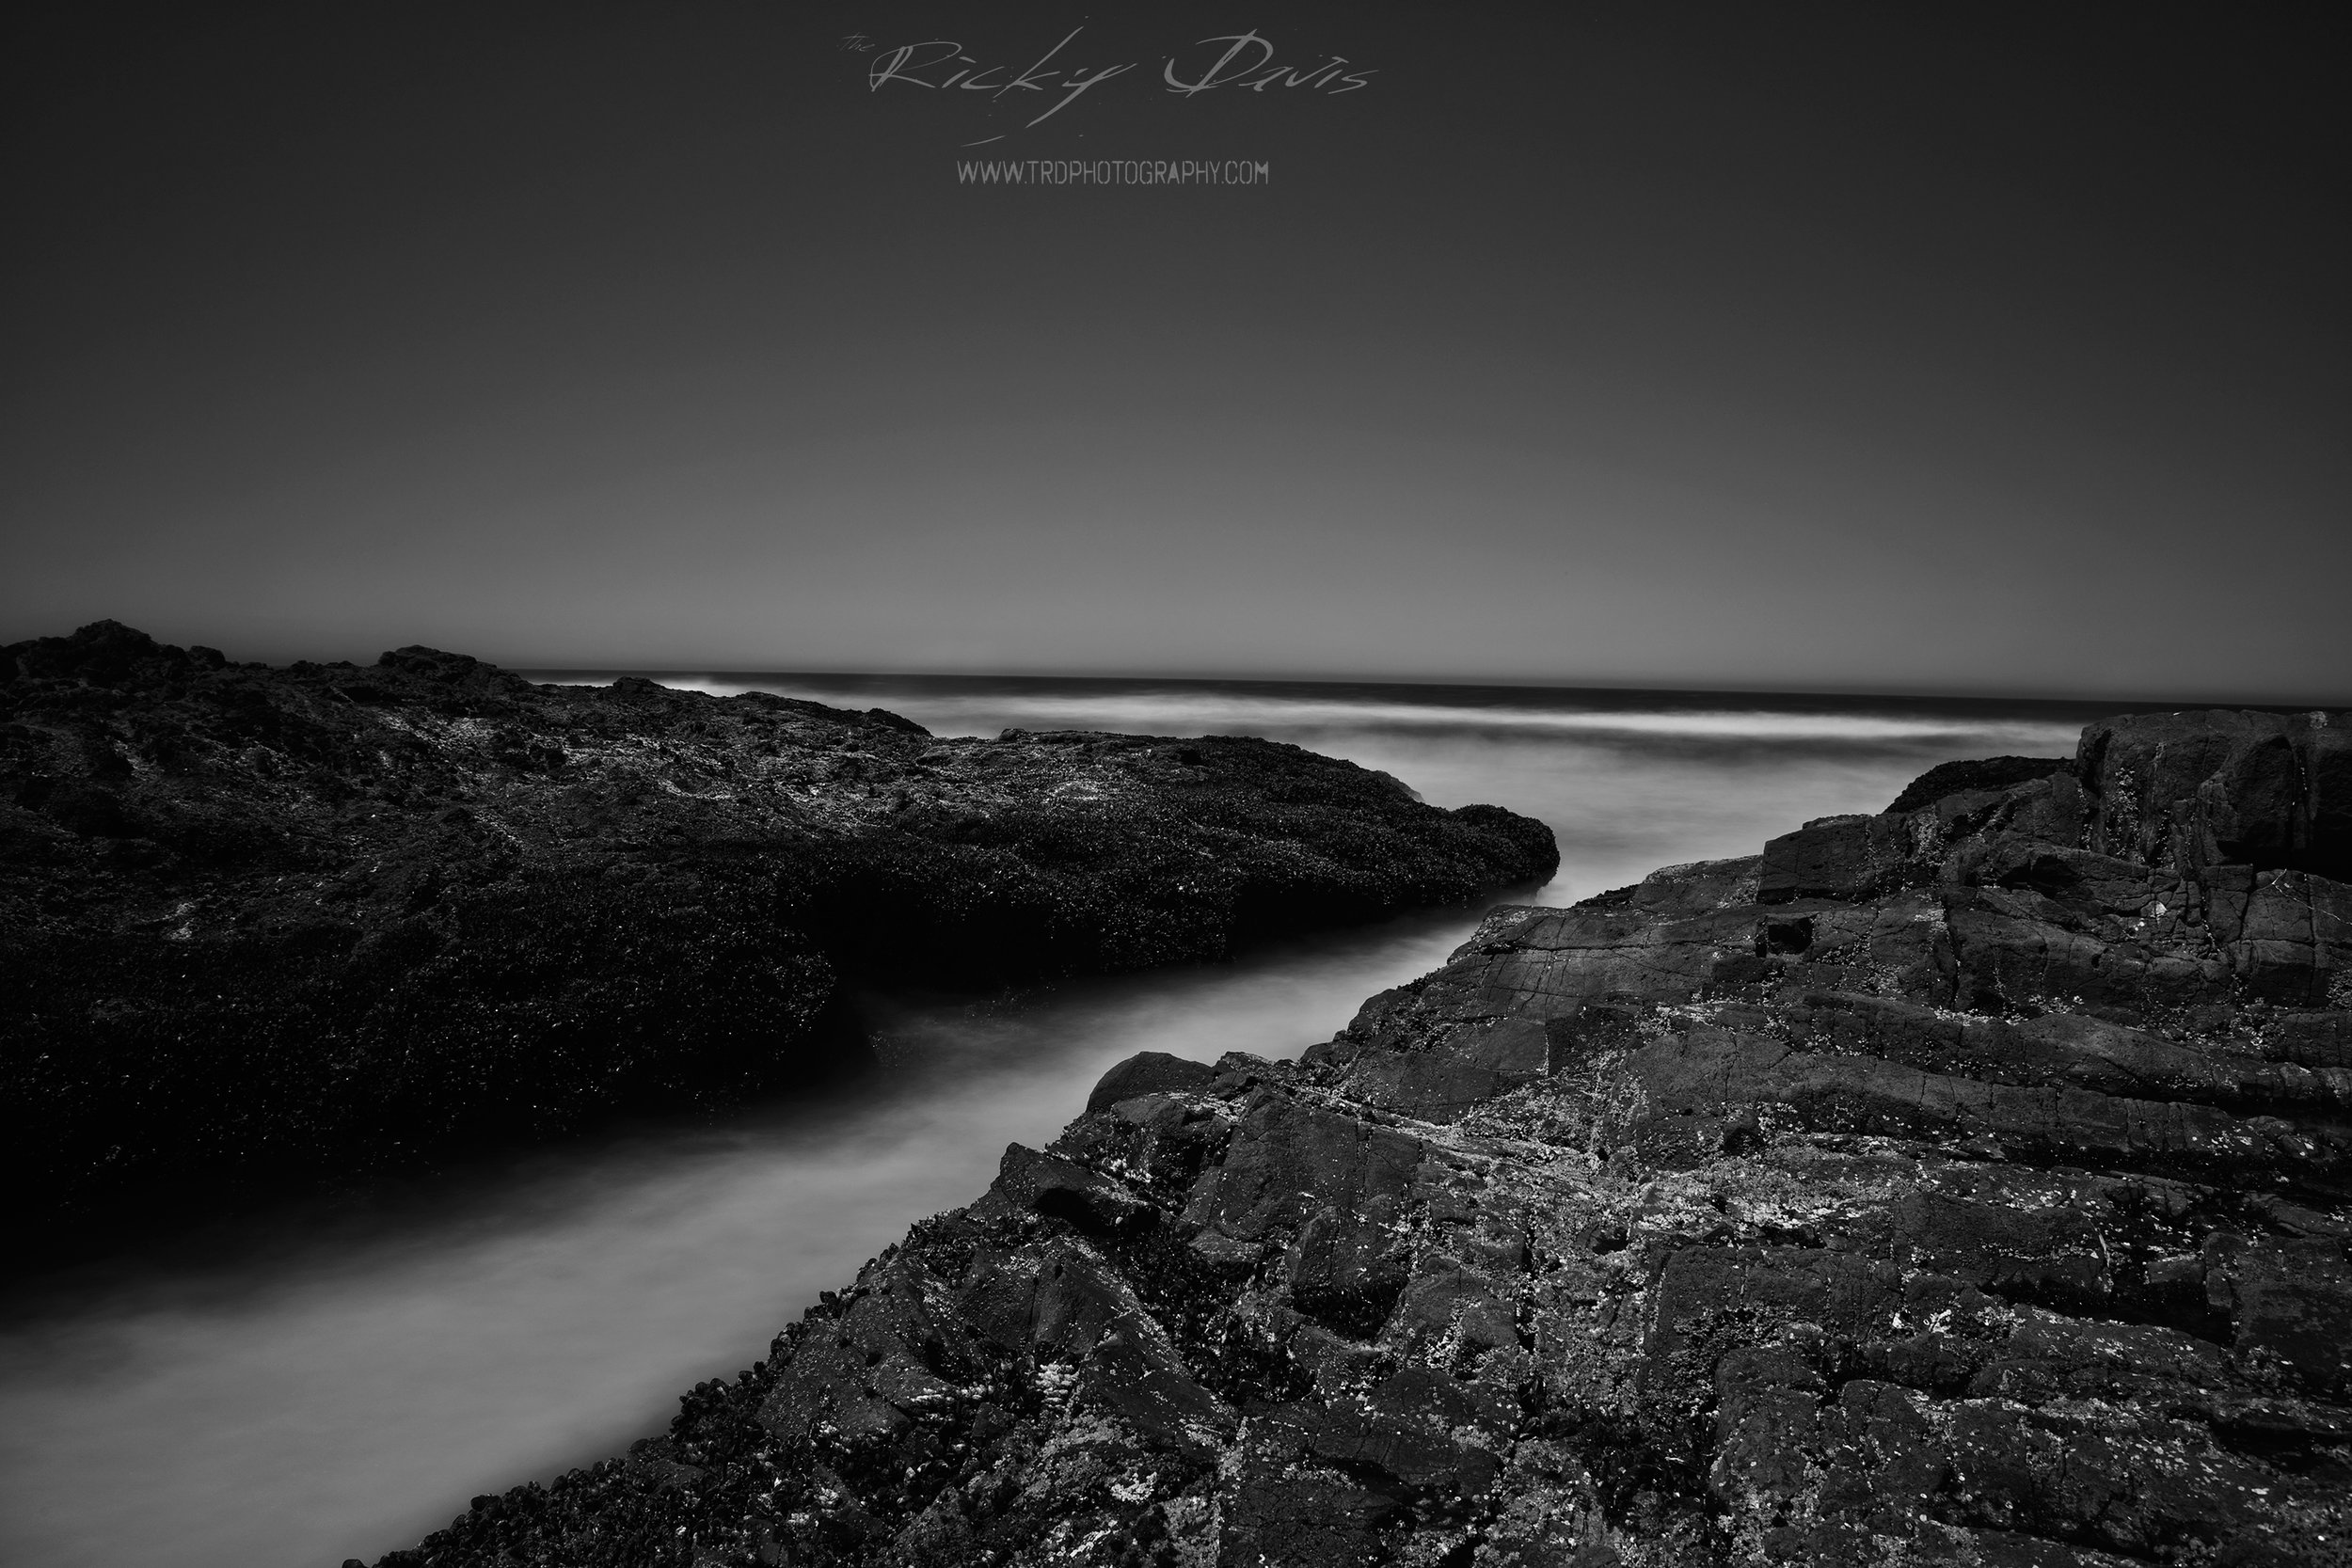 Oregon Coast - 2015 - TRD Photography